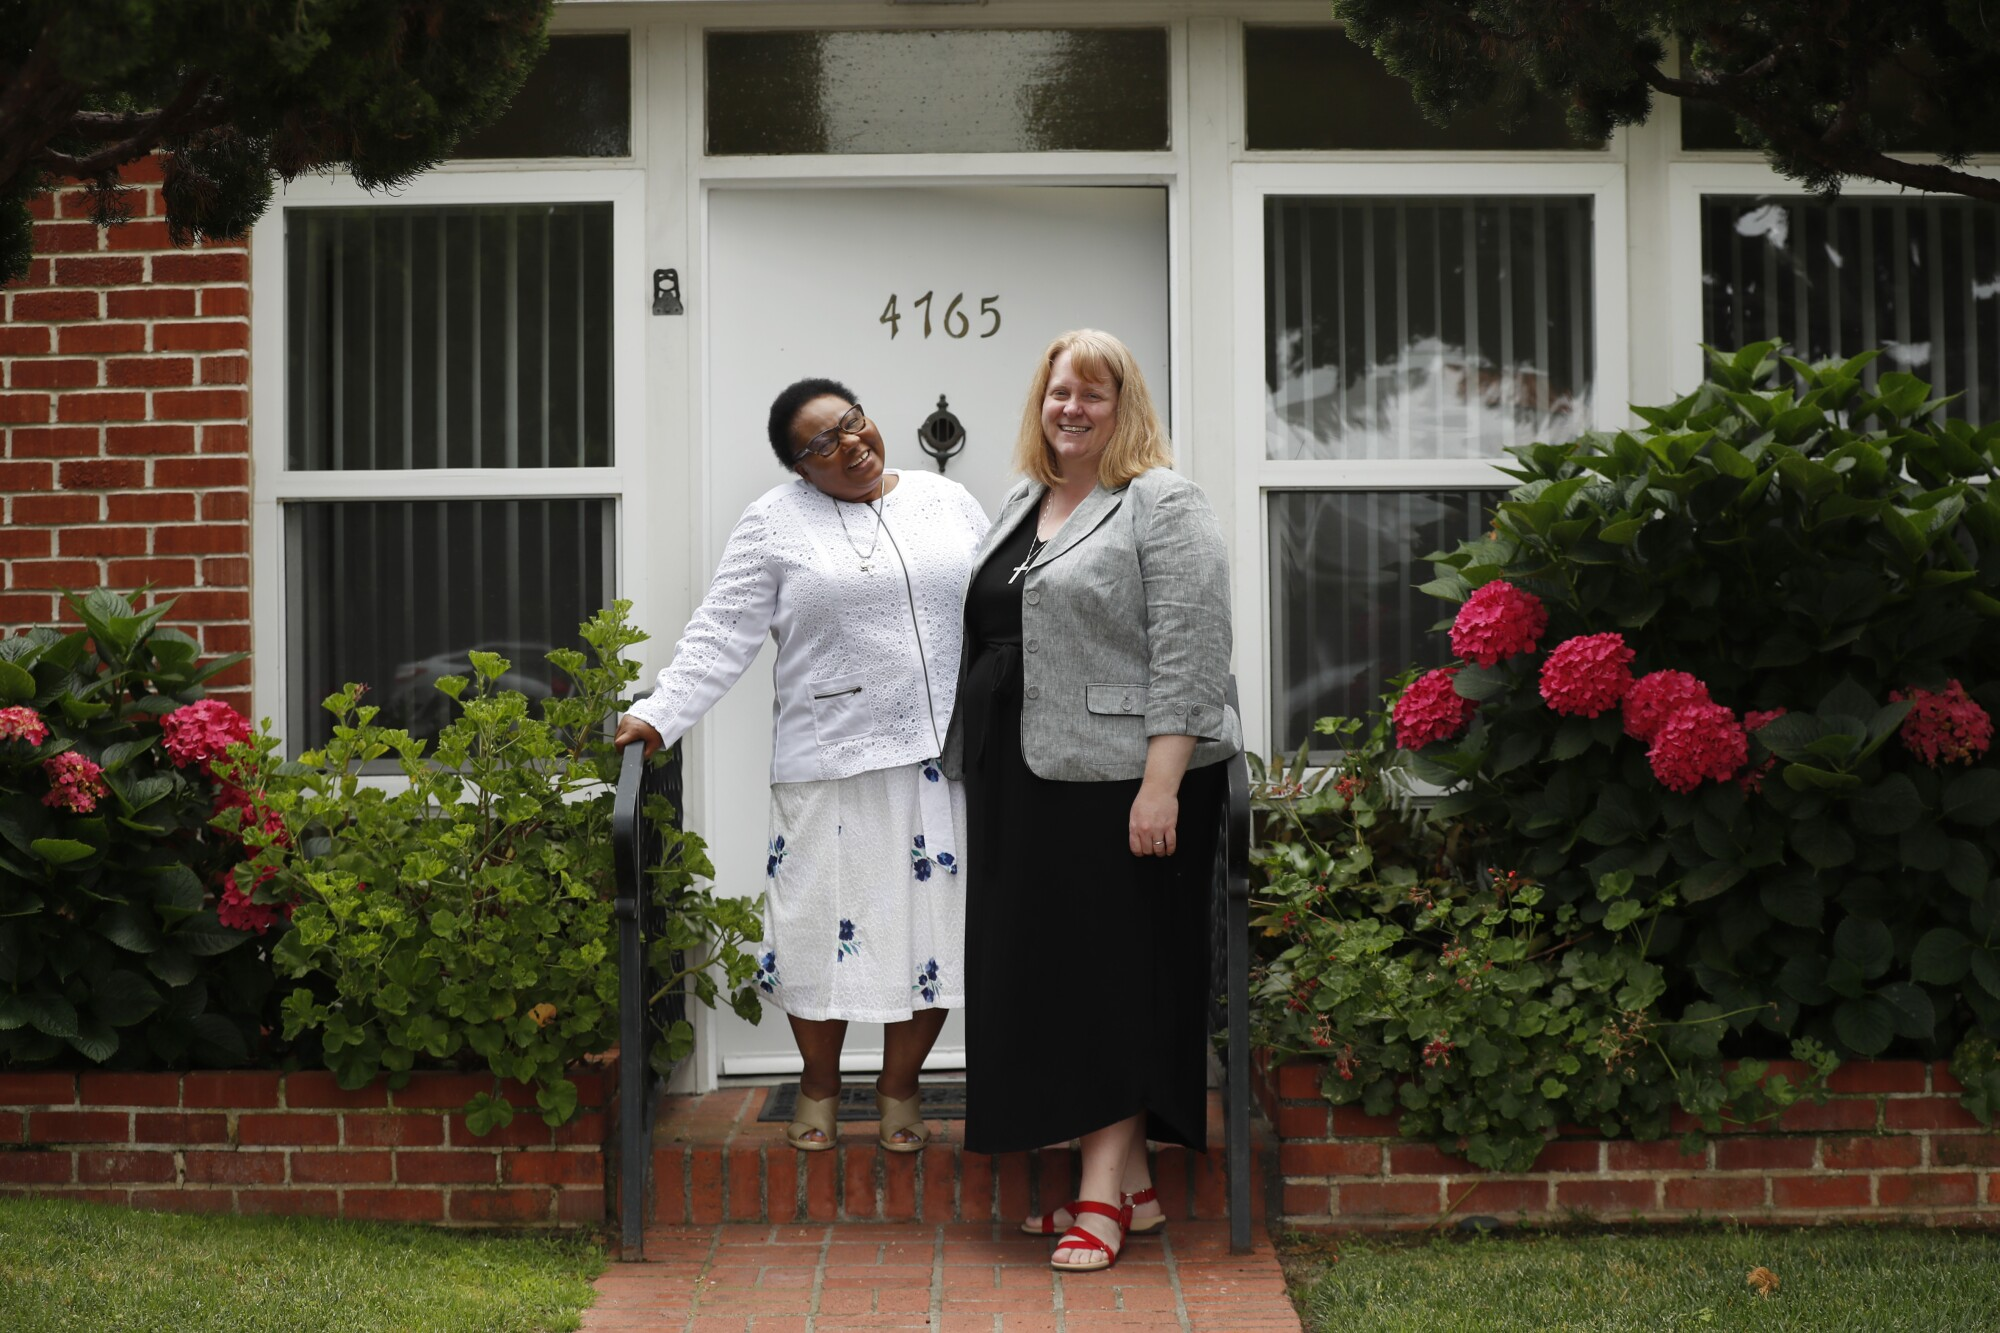 Sister Evelyn Uchenna Oluoha (left) and Sister Juliet Mousseau are nuns with the Society of the Sacred Heart.